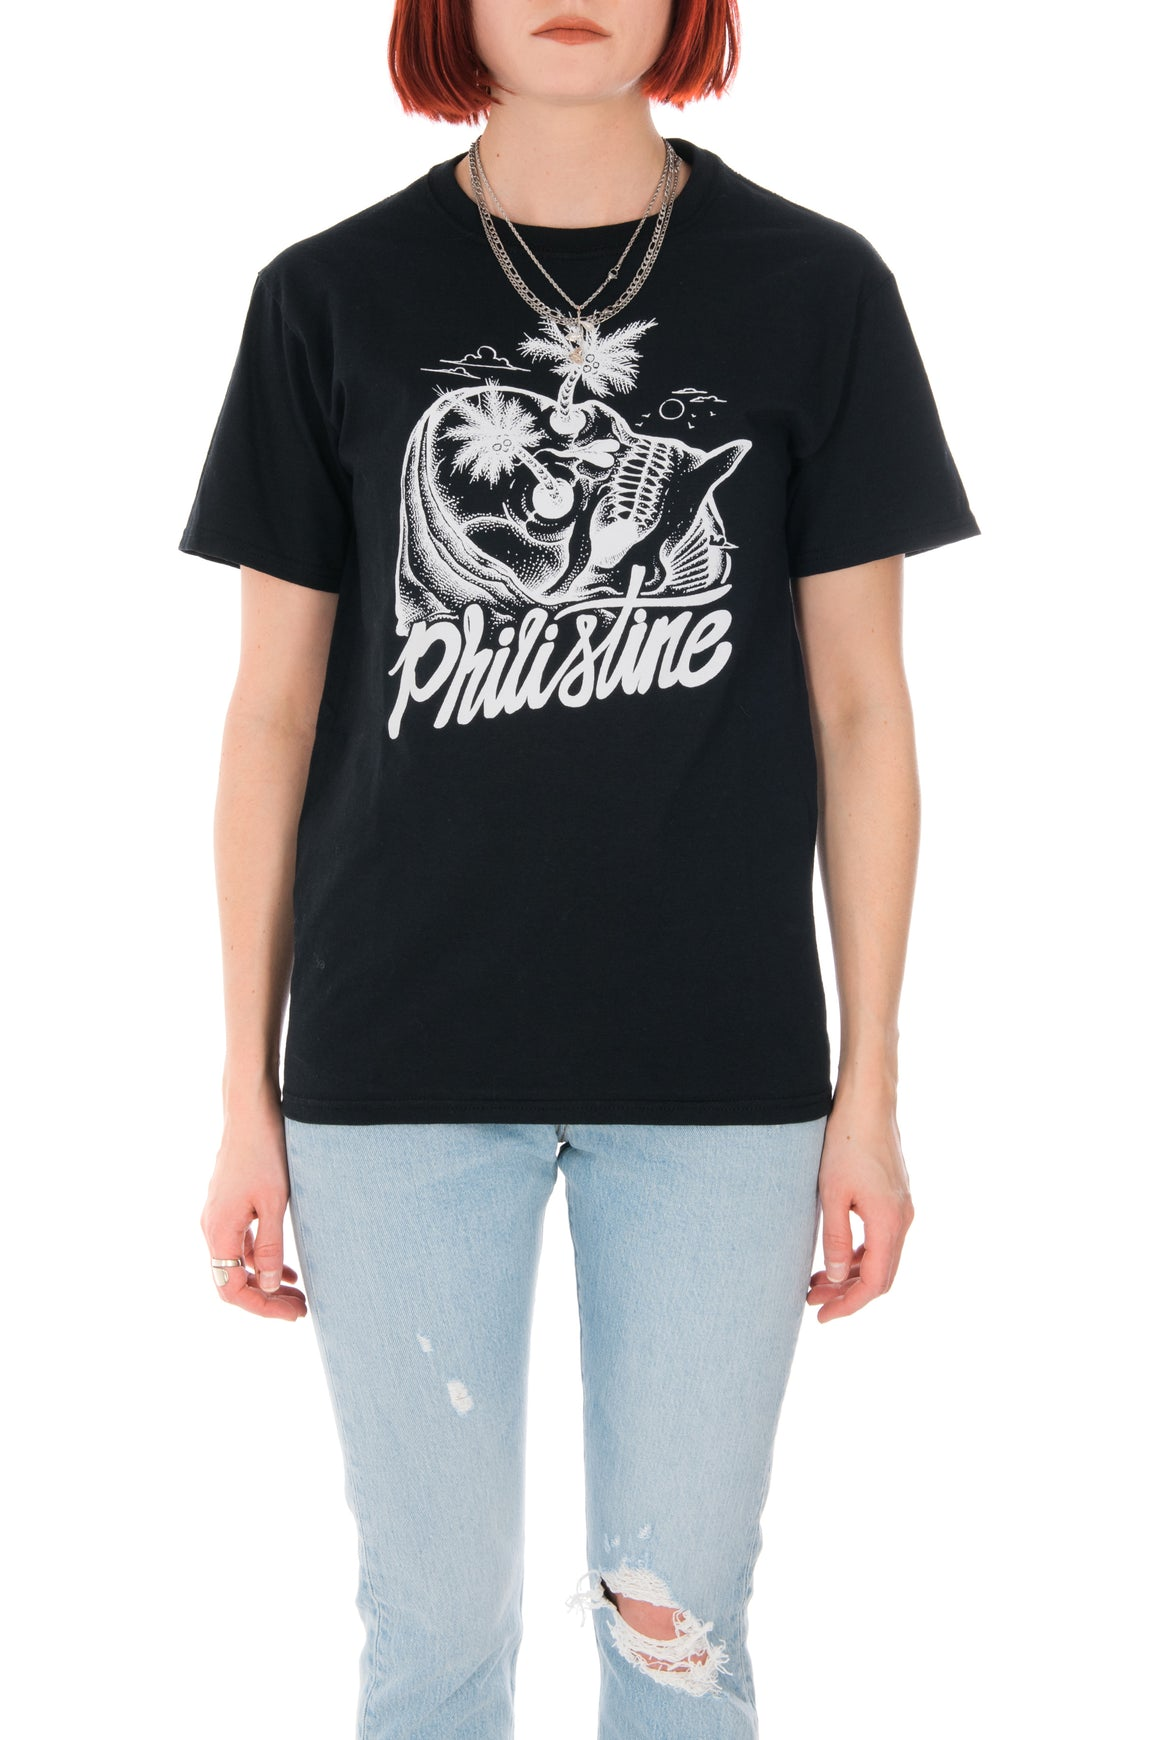 Palm Reaper Tee in Black - Philistine